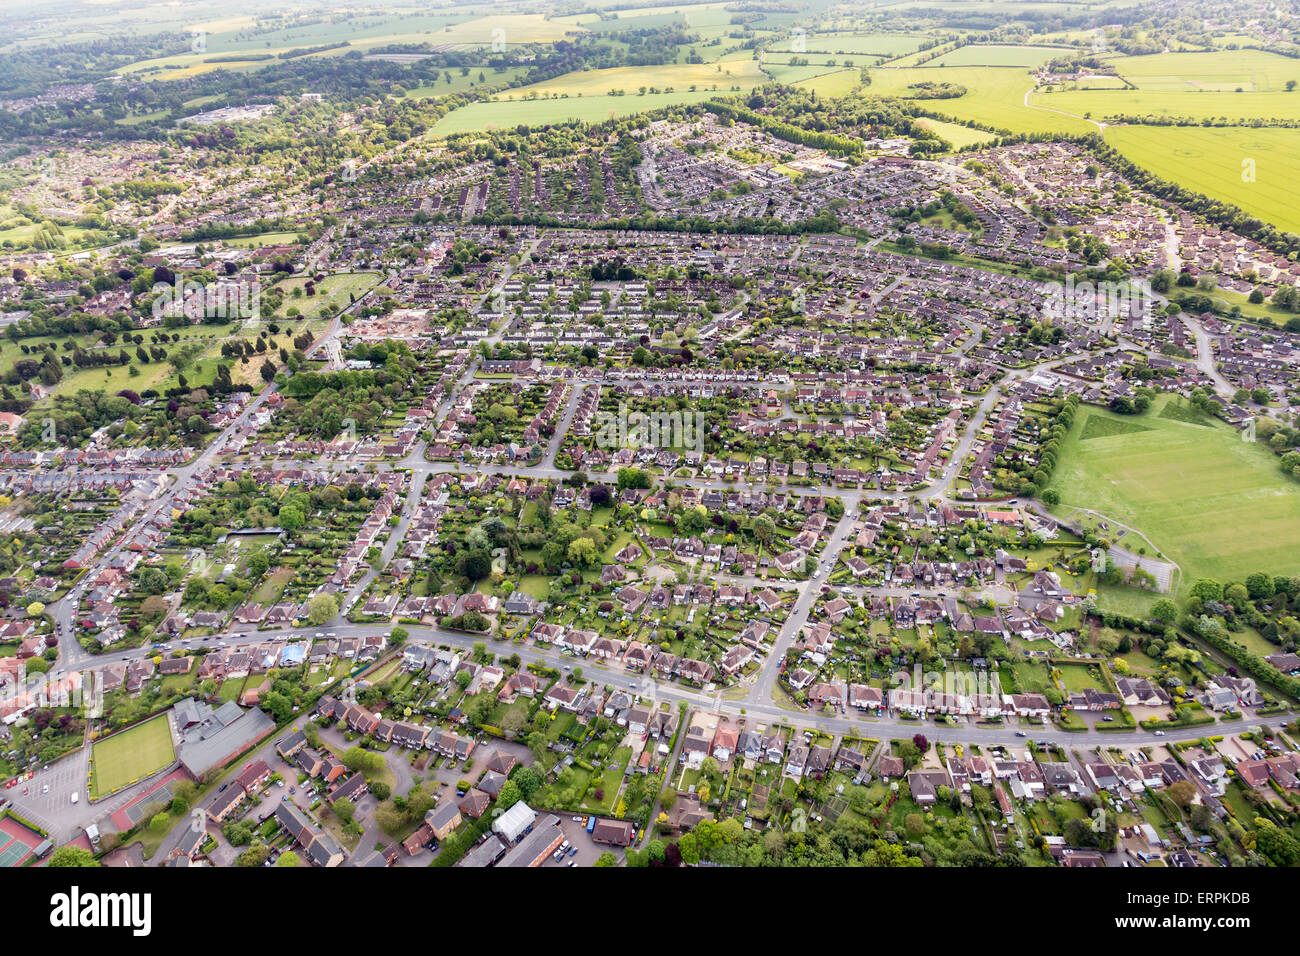 aerial photo view of Bury St Edmunds - Stock Image